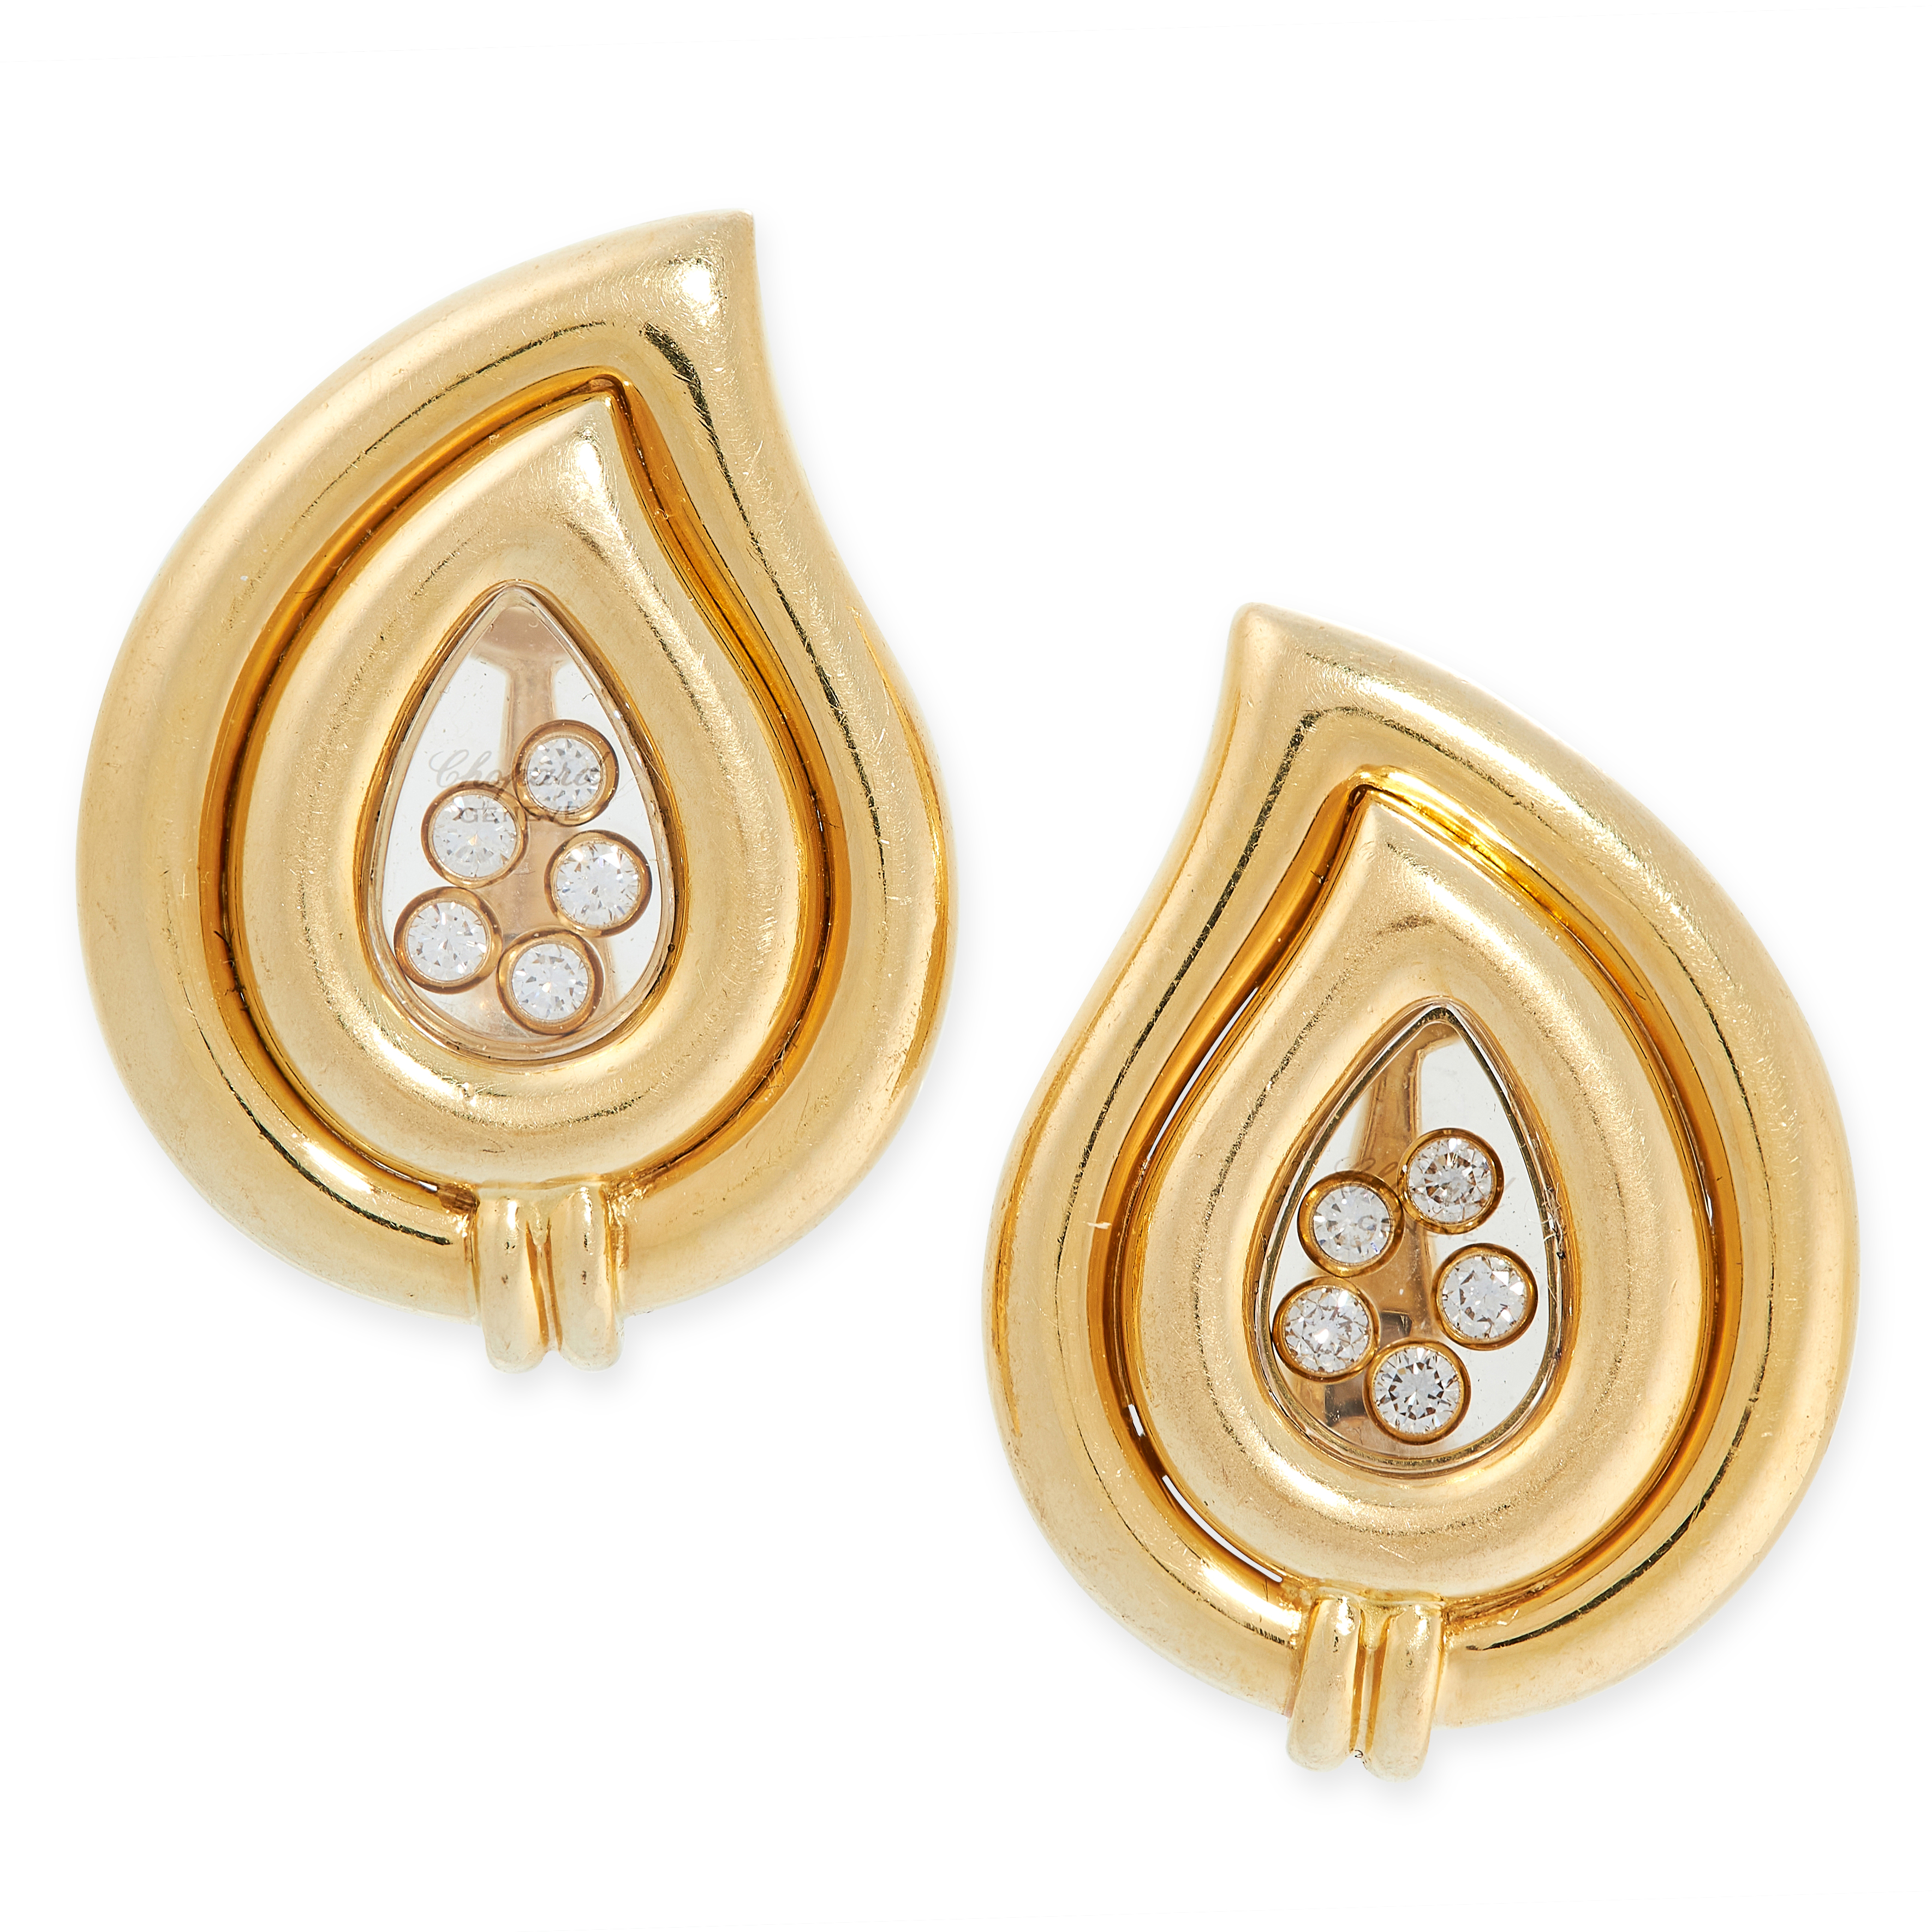 A PAIR OF HAPPY DIAMOND CLIP EARRINGS, CHOPARD in 18ct yellow gold, of drop shaped design, each